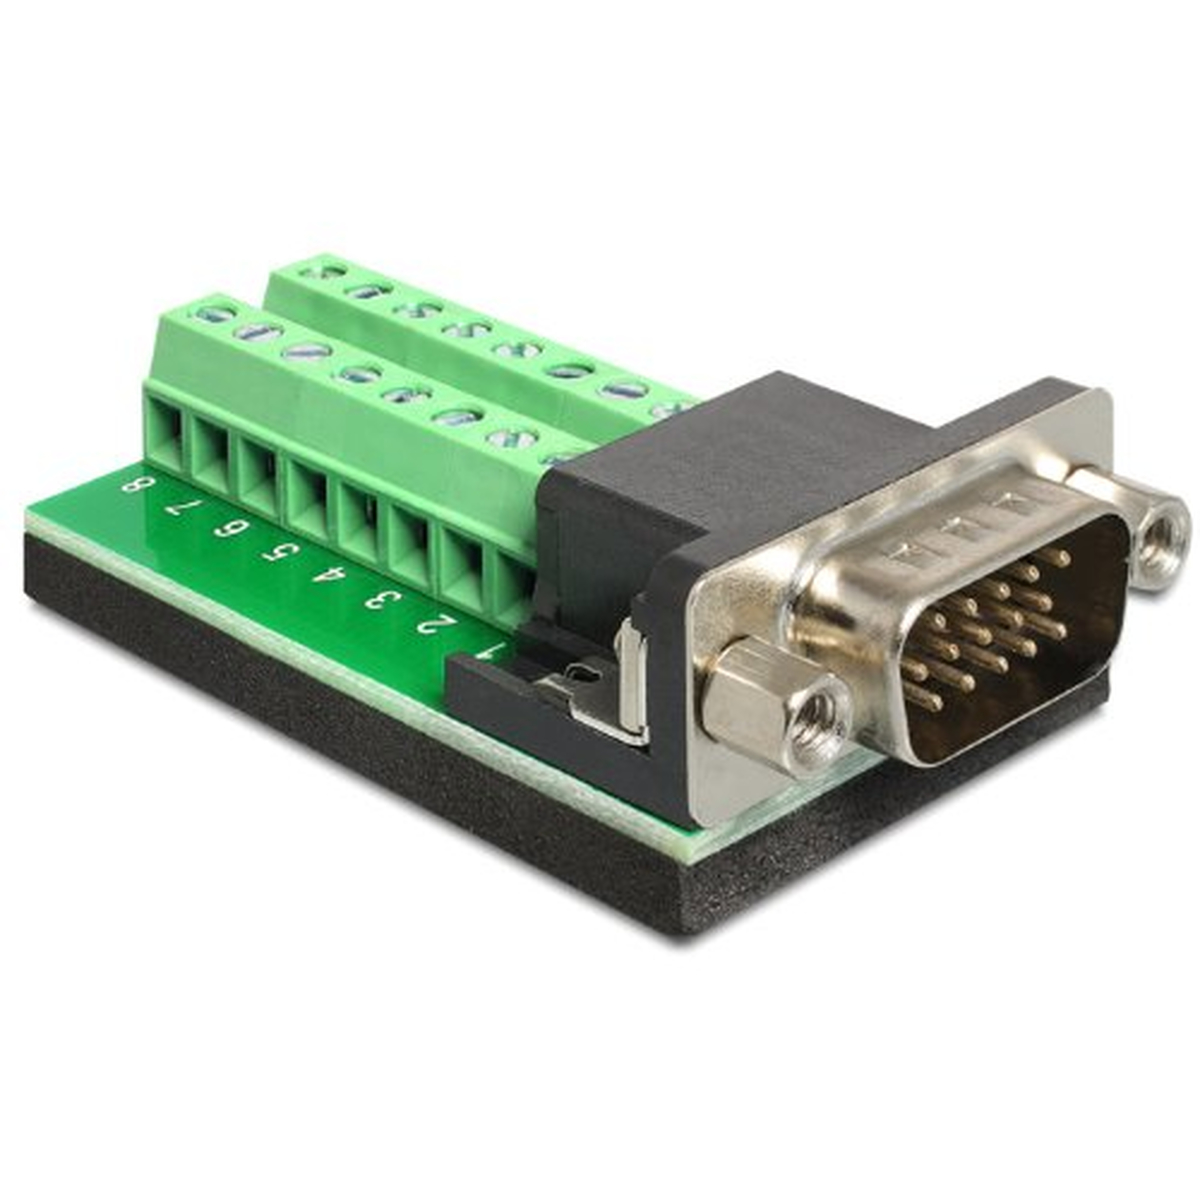 DeLOCK Adapter VGA Stecker > Terminalblock 16 Pin